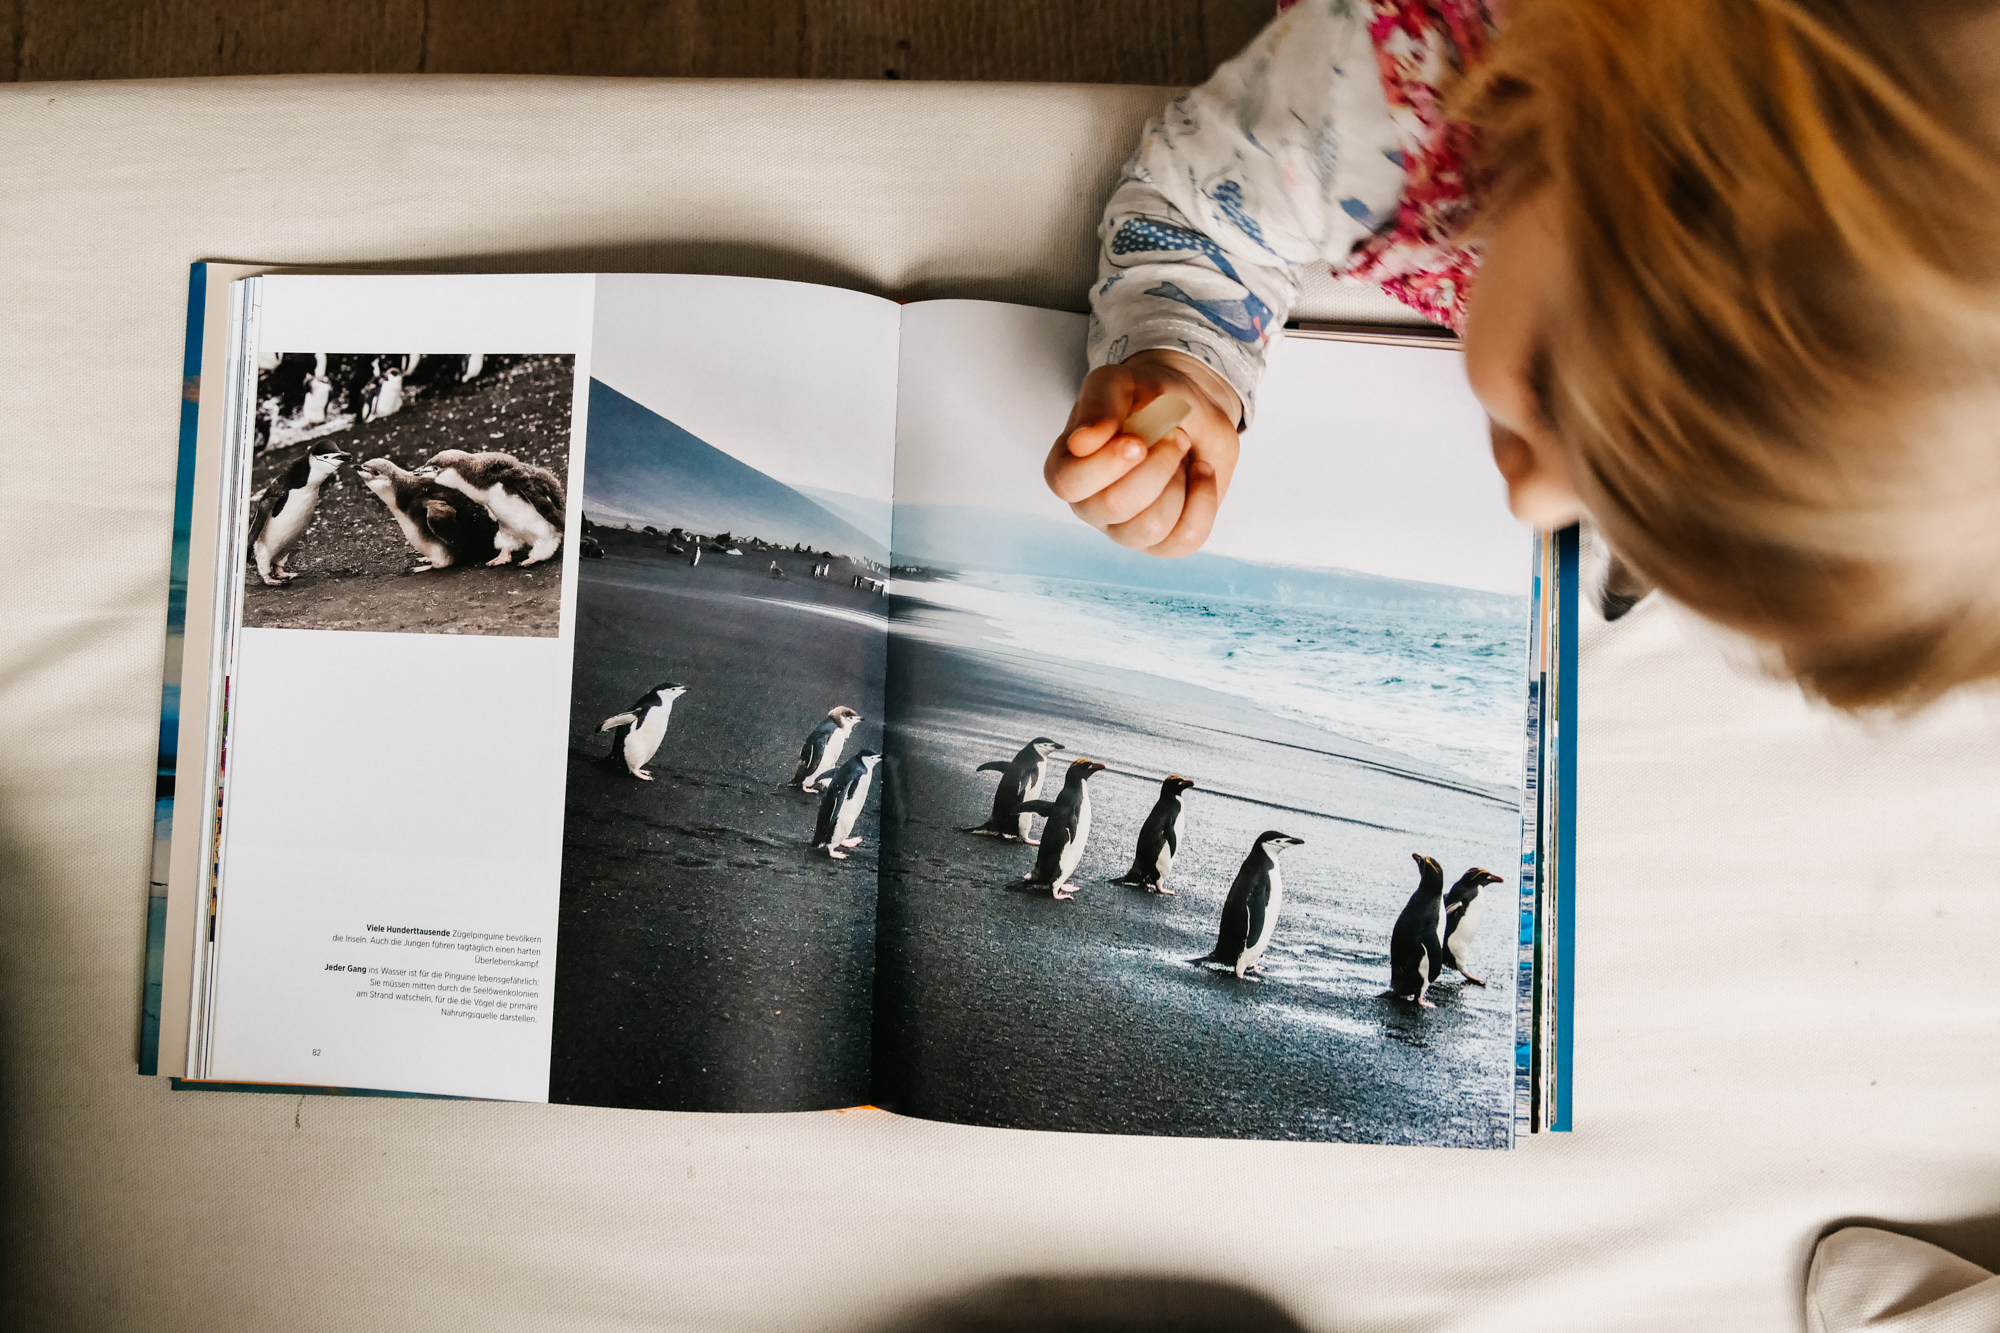 Little Girls looks at photo book with penguins